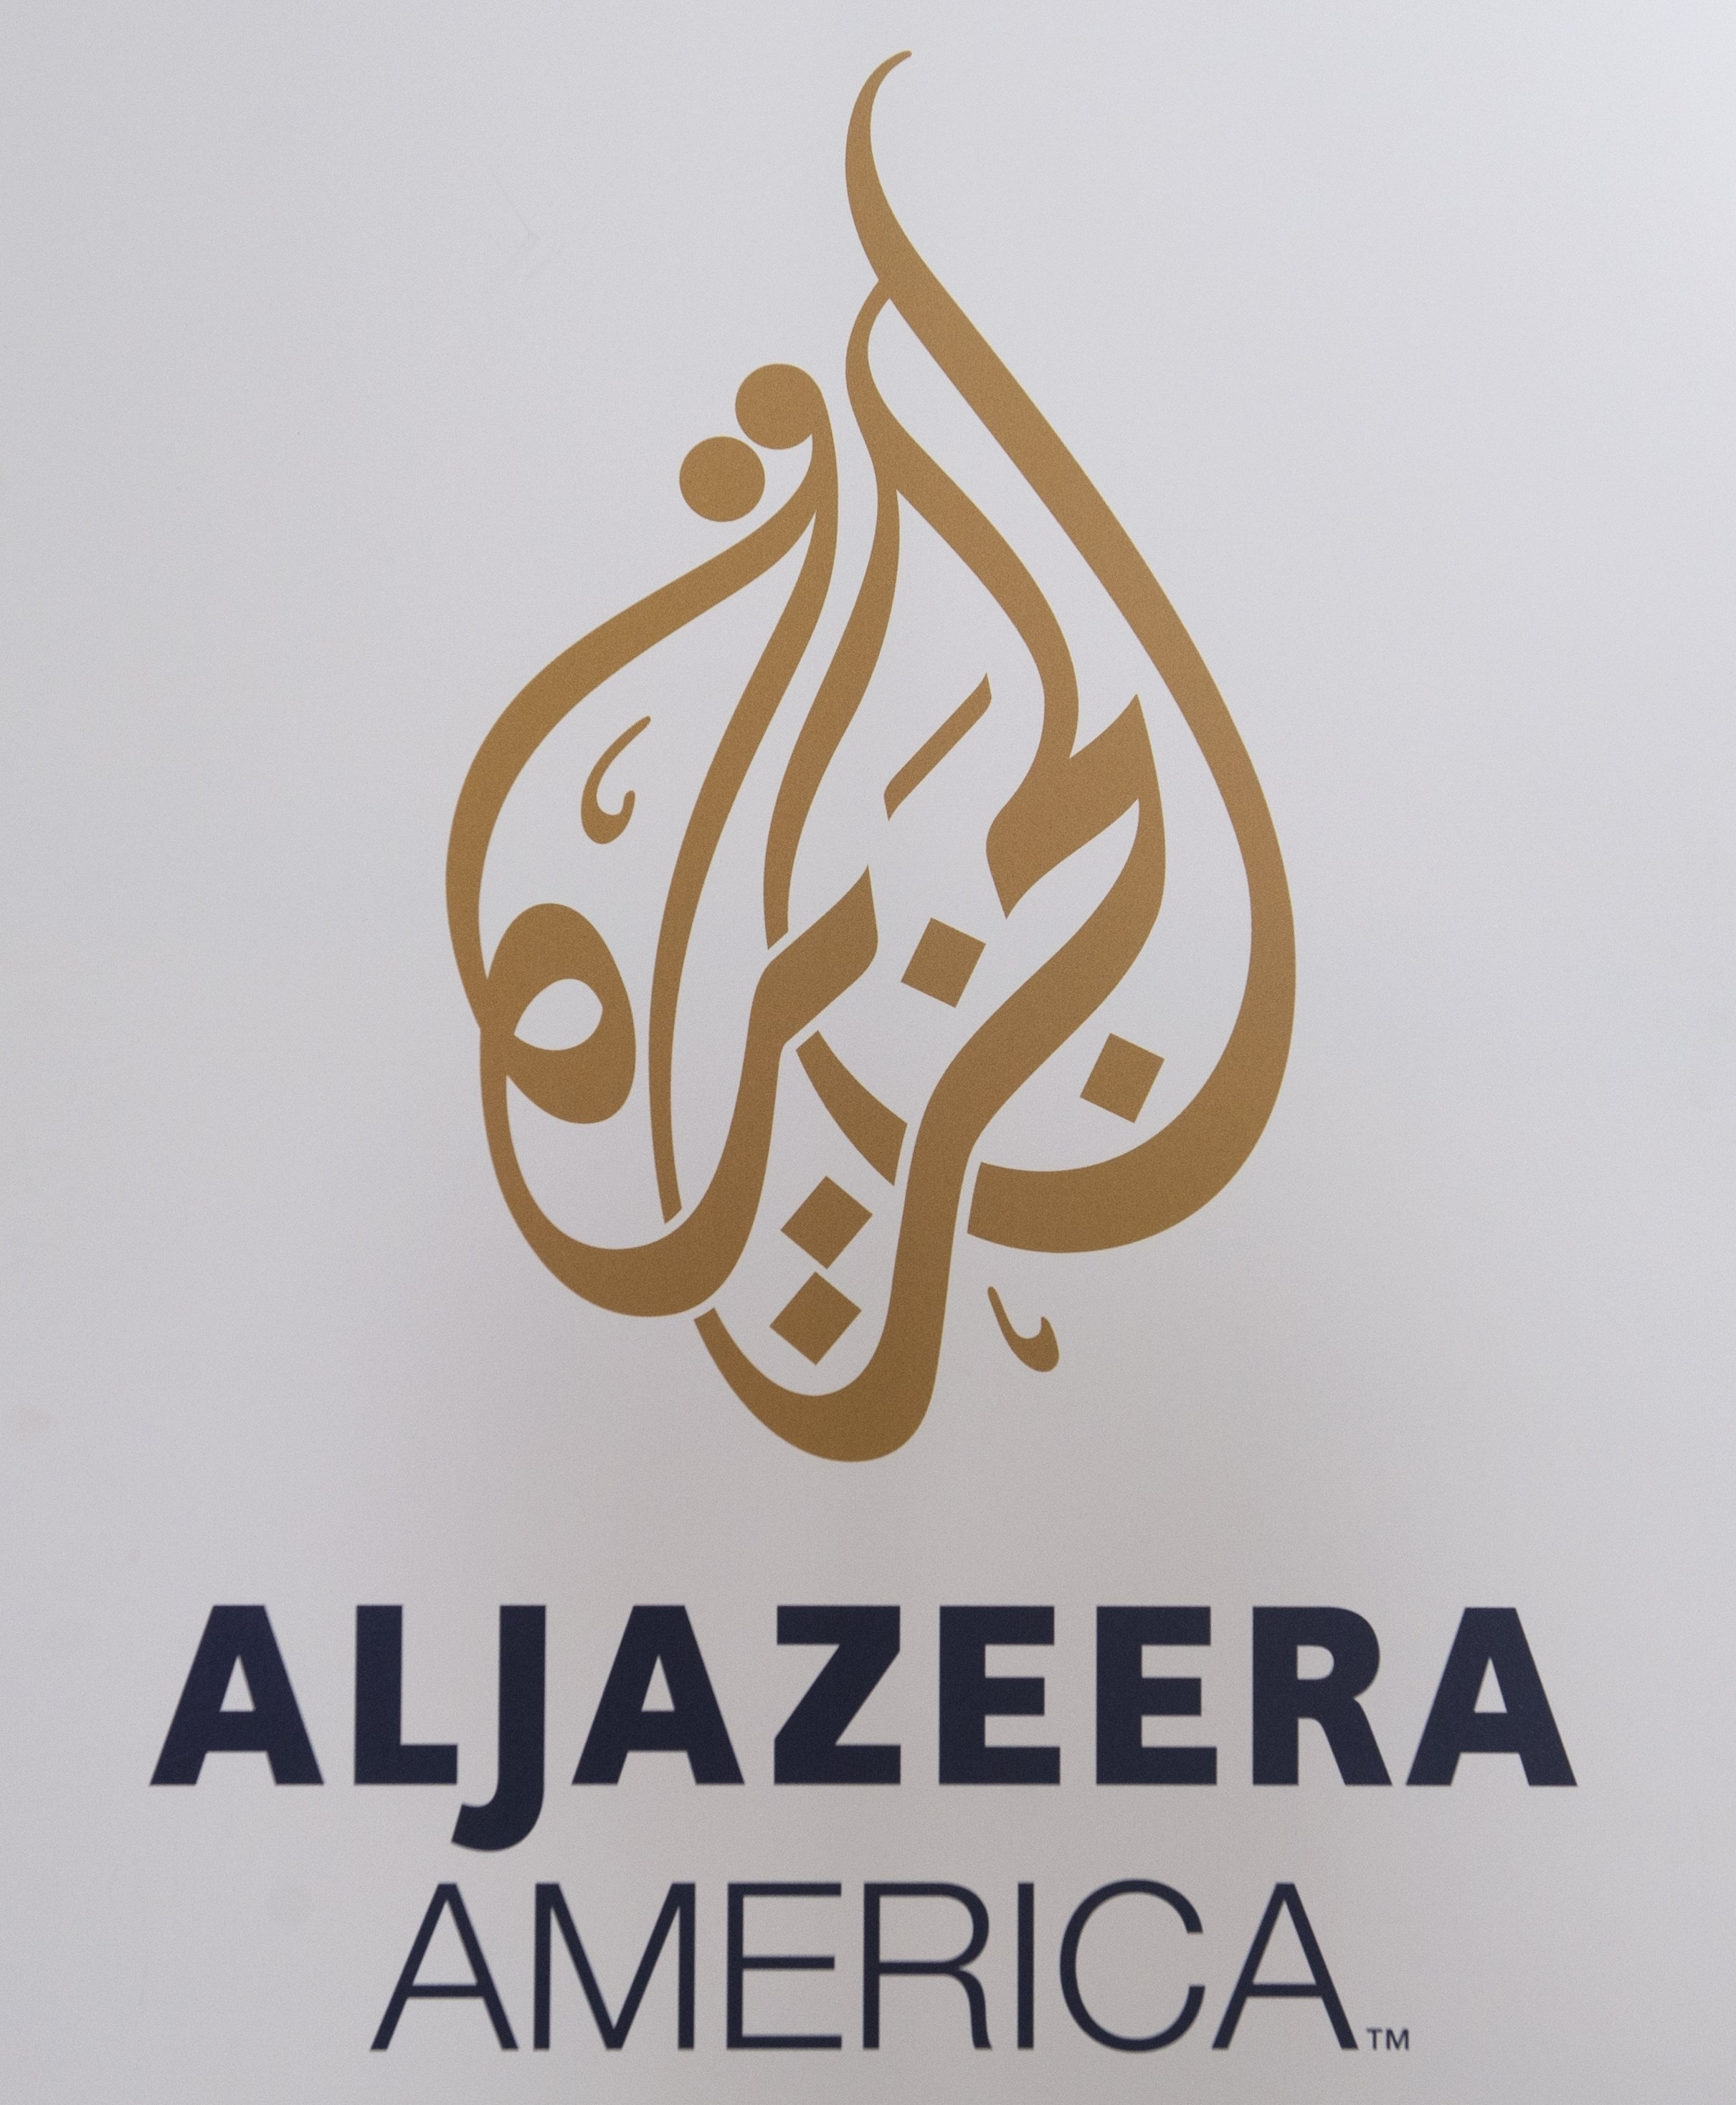 The logo for the cable news network Al Jazeera America appears outside the network's studio space at the Newseum in Washington, D.C.